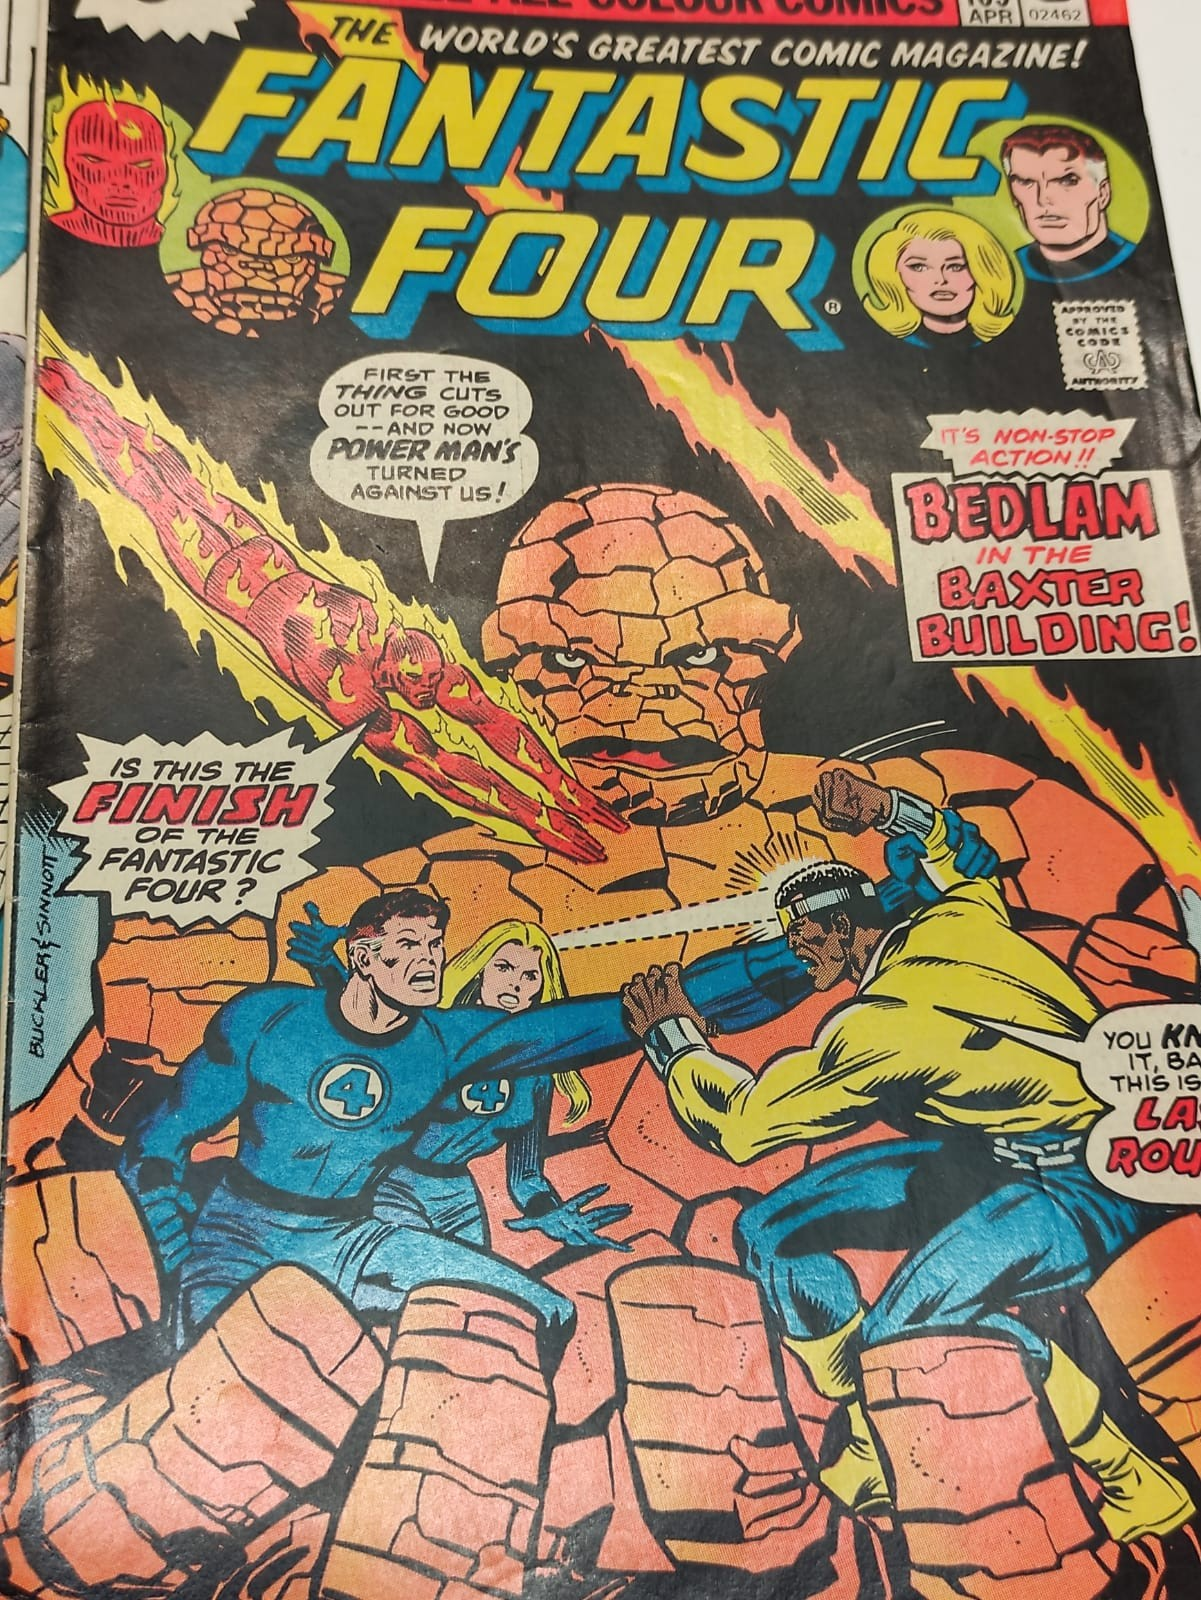 30x Marvel Fantastic four mid 1970s editions. Used, in good condition. - Image 16 of 17